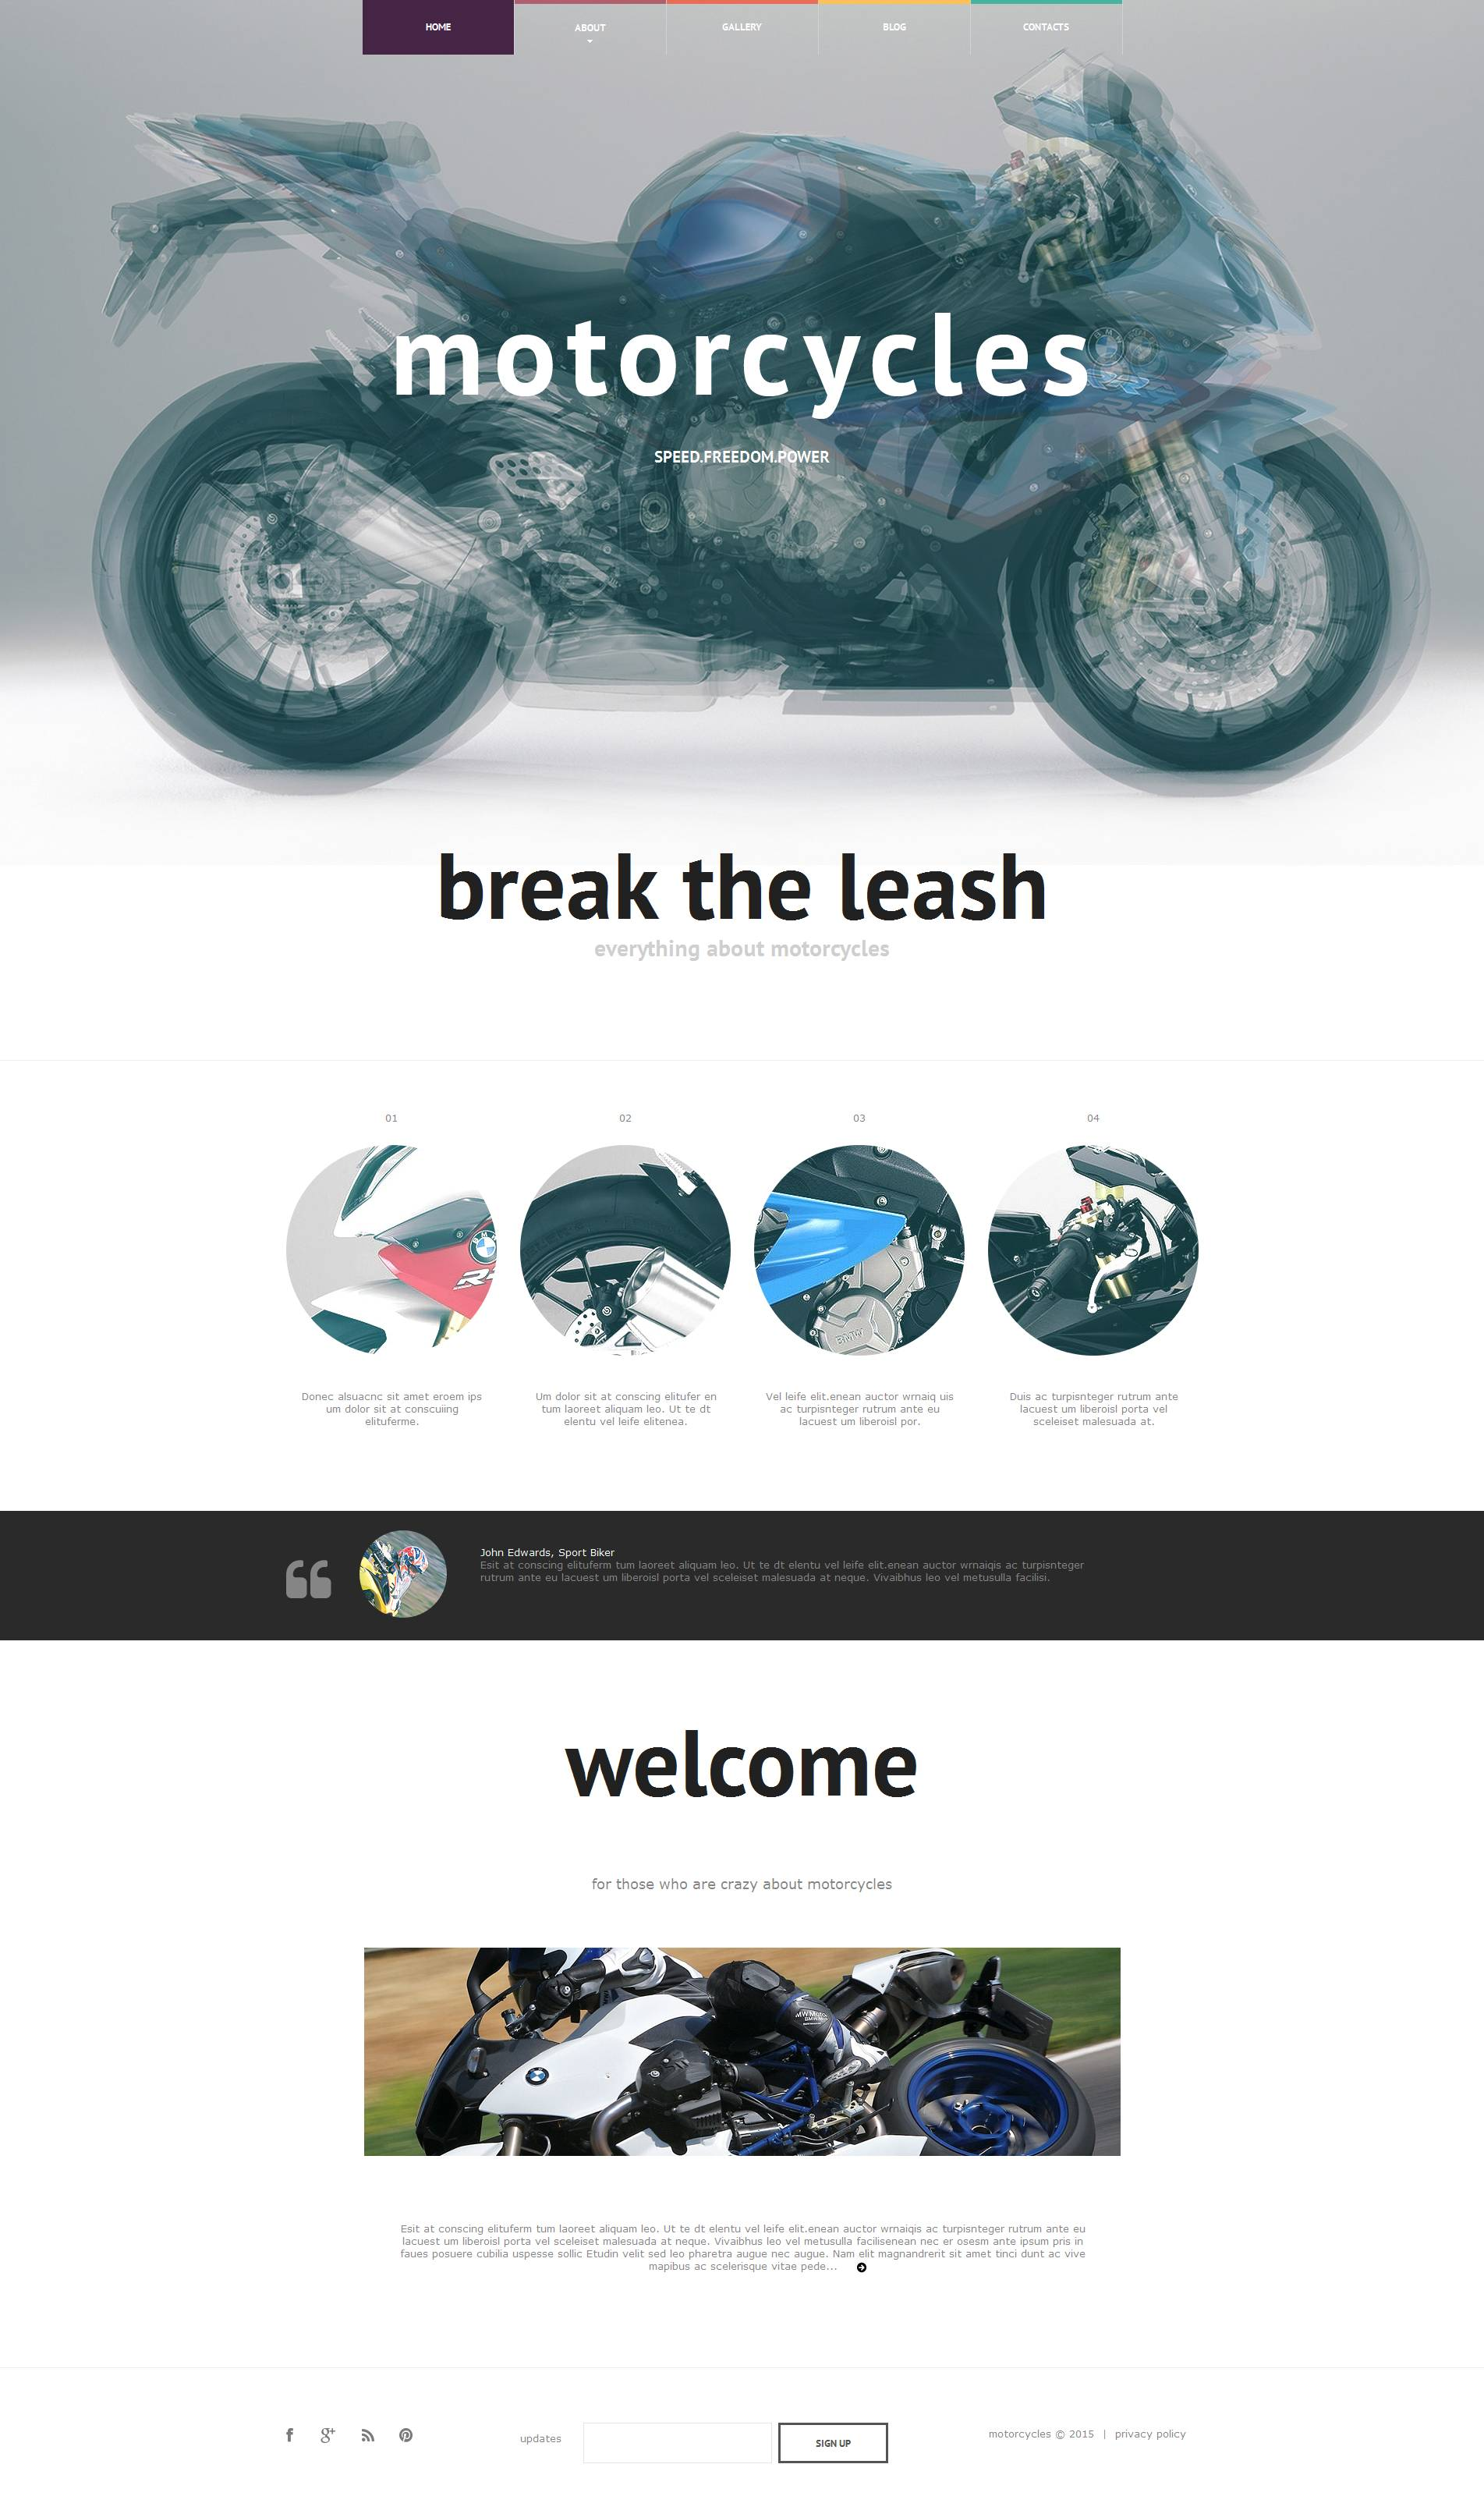 The Motocycles Moto Moto CMS HTML Design 53513, one of the best Moto CMS HTML templates of its kind (cars), also known as motocycles moto Moto CMS HTML template, motor Moto CMS HTML template, bikes store Moto CMS HTML template, helmets Moto CMS HTML template, gear Moto CMS HTML template, scooter Moto CMS HTML template, snowmobile Moto CMS HTML template, parts Moto CMS HTML template, accessories Moto CMS HTML template, tires Moto CMS HTML template, closeouts and related with motocycles moto, motor, bikes store, helmets, gear, scooter, snowmobile, parts, accessories, tires, closeouts, etc.